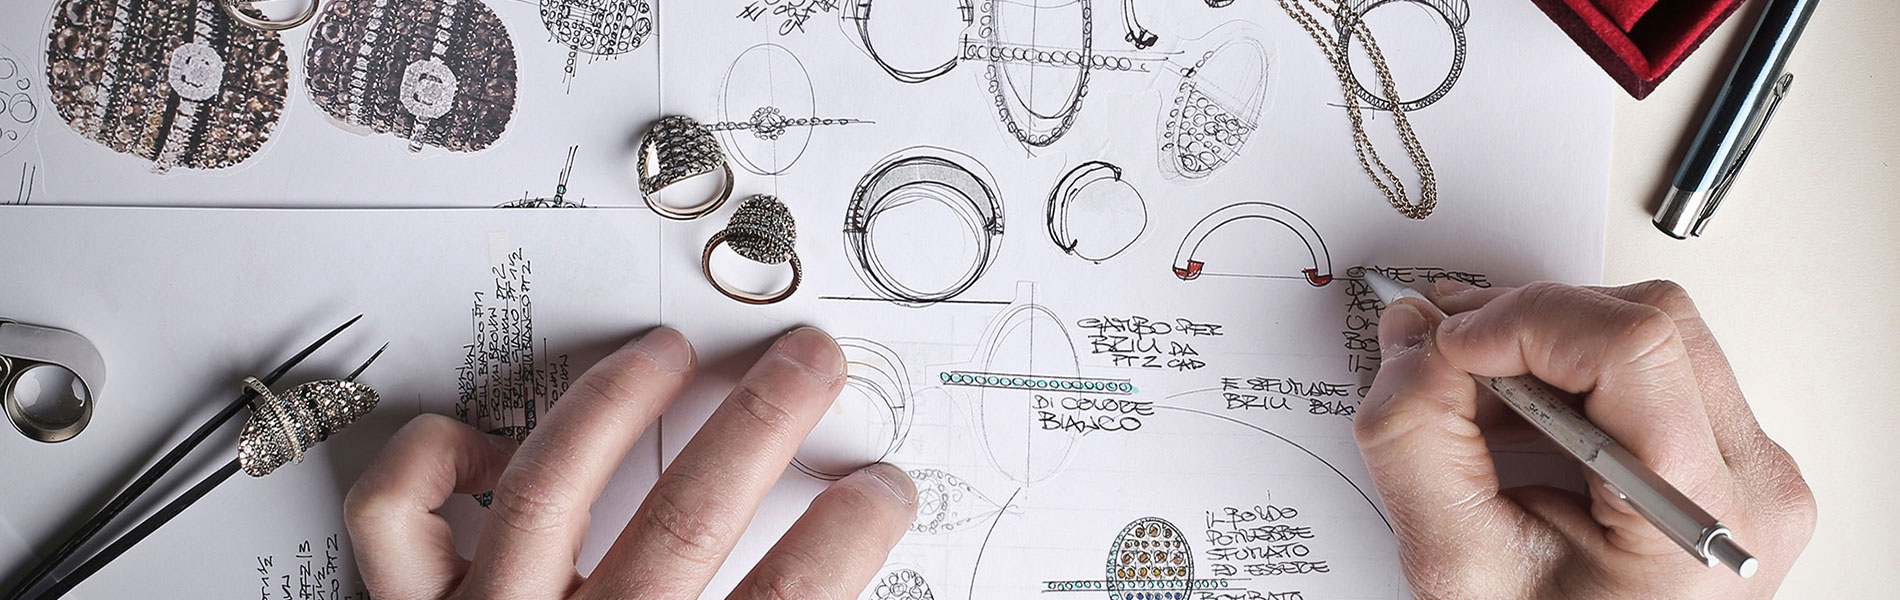 Metalsmithing and jewelry hands drawing